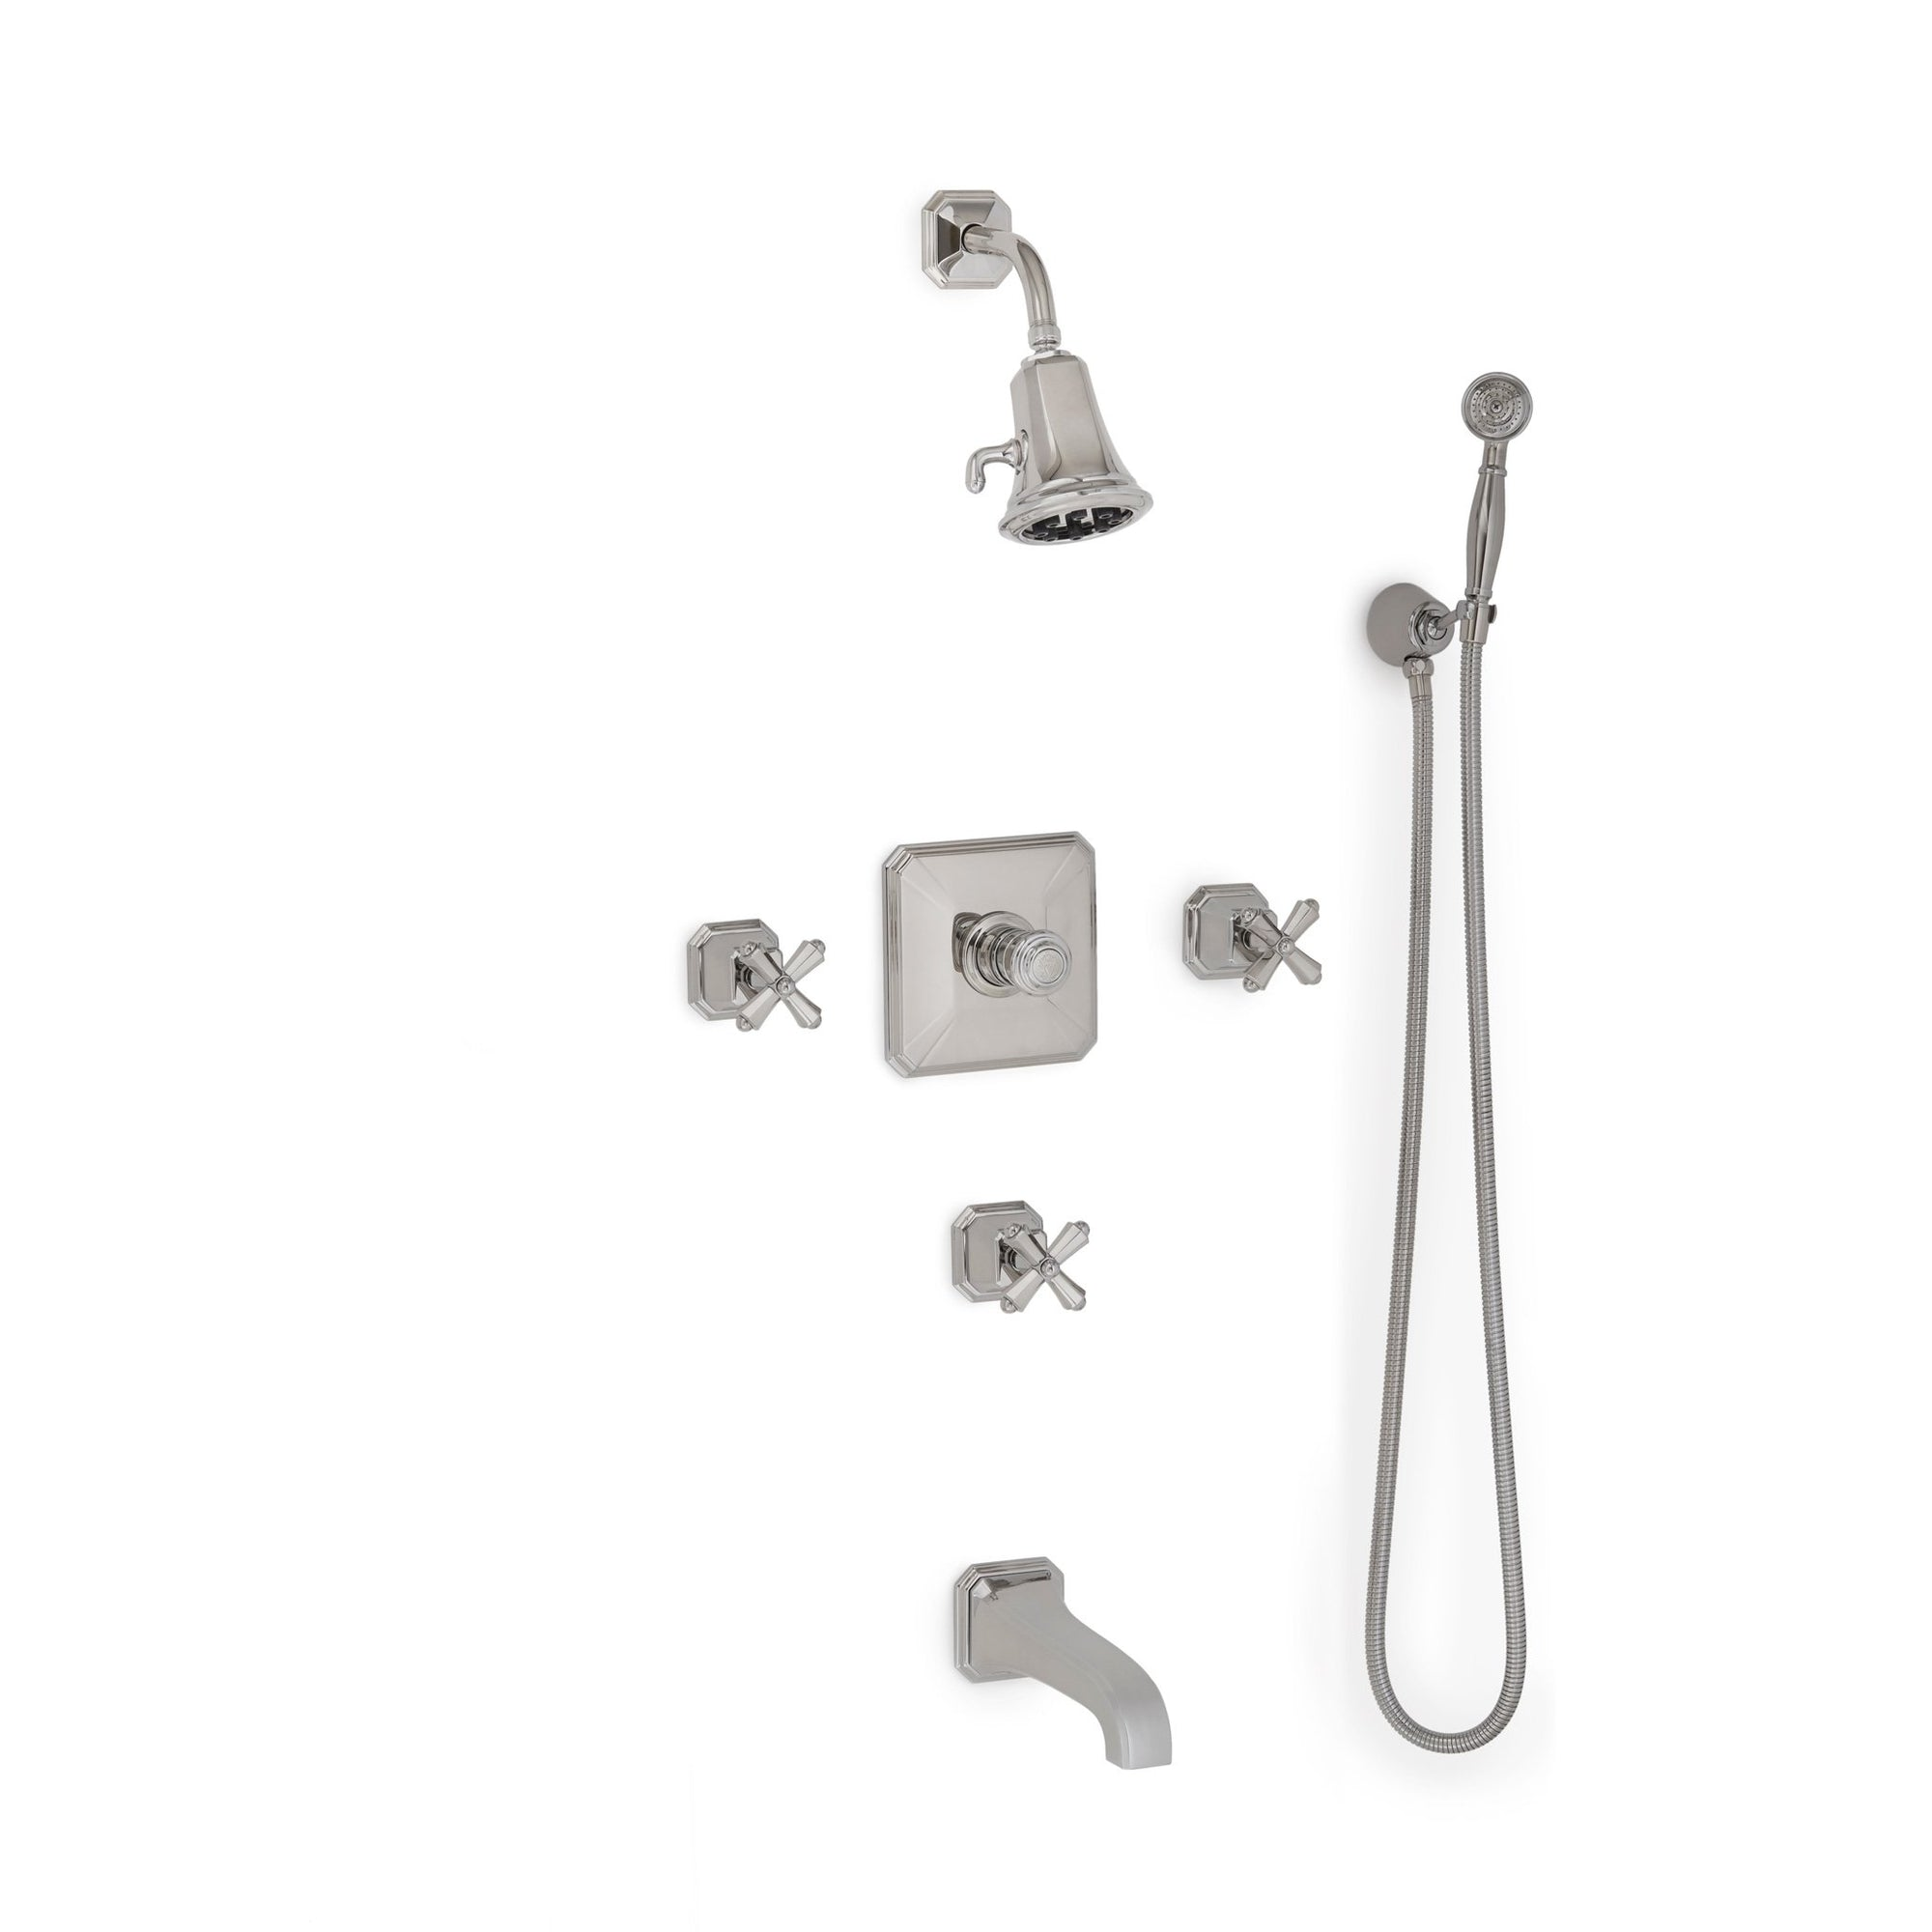 Sherle Wagner International Harrison Cross Handle High Flow Thermostatic Shower and Tub System in Polished Chrome metal finish